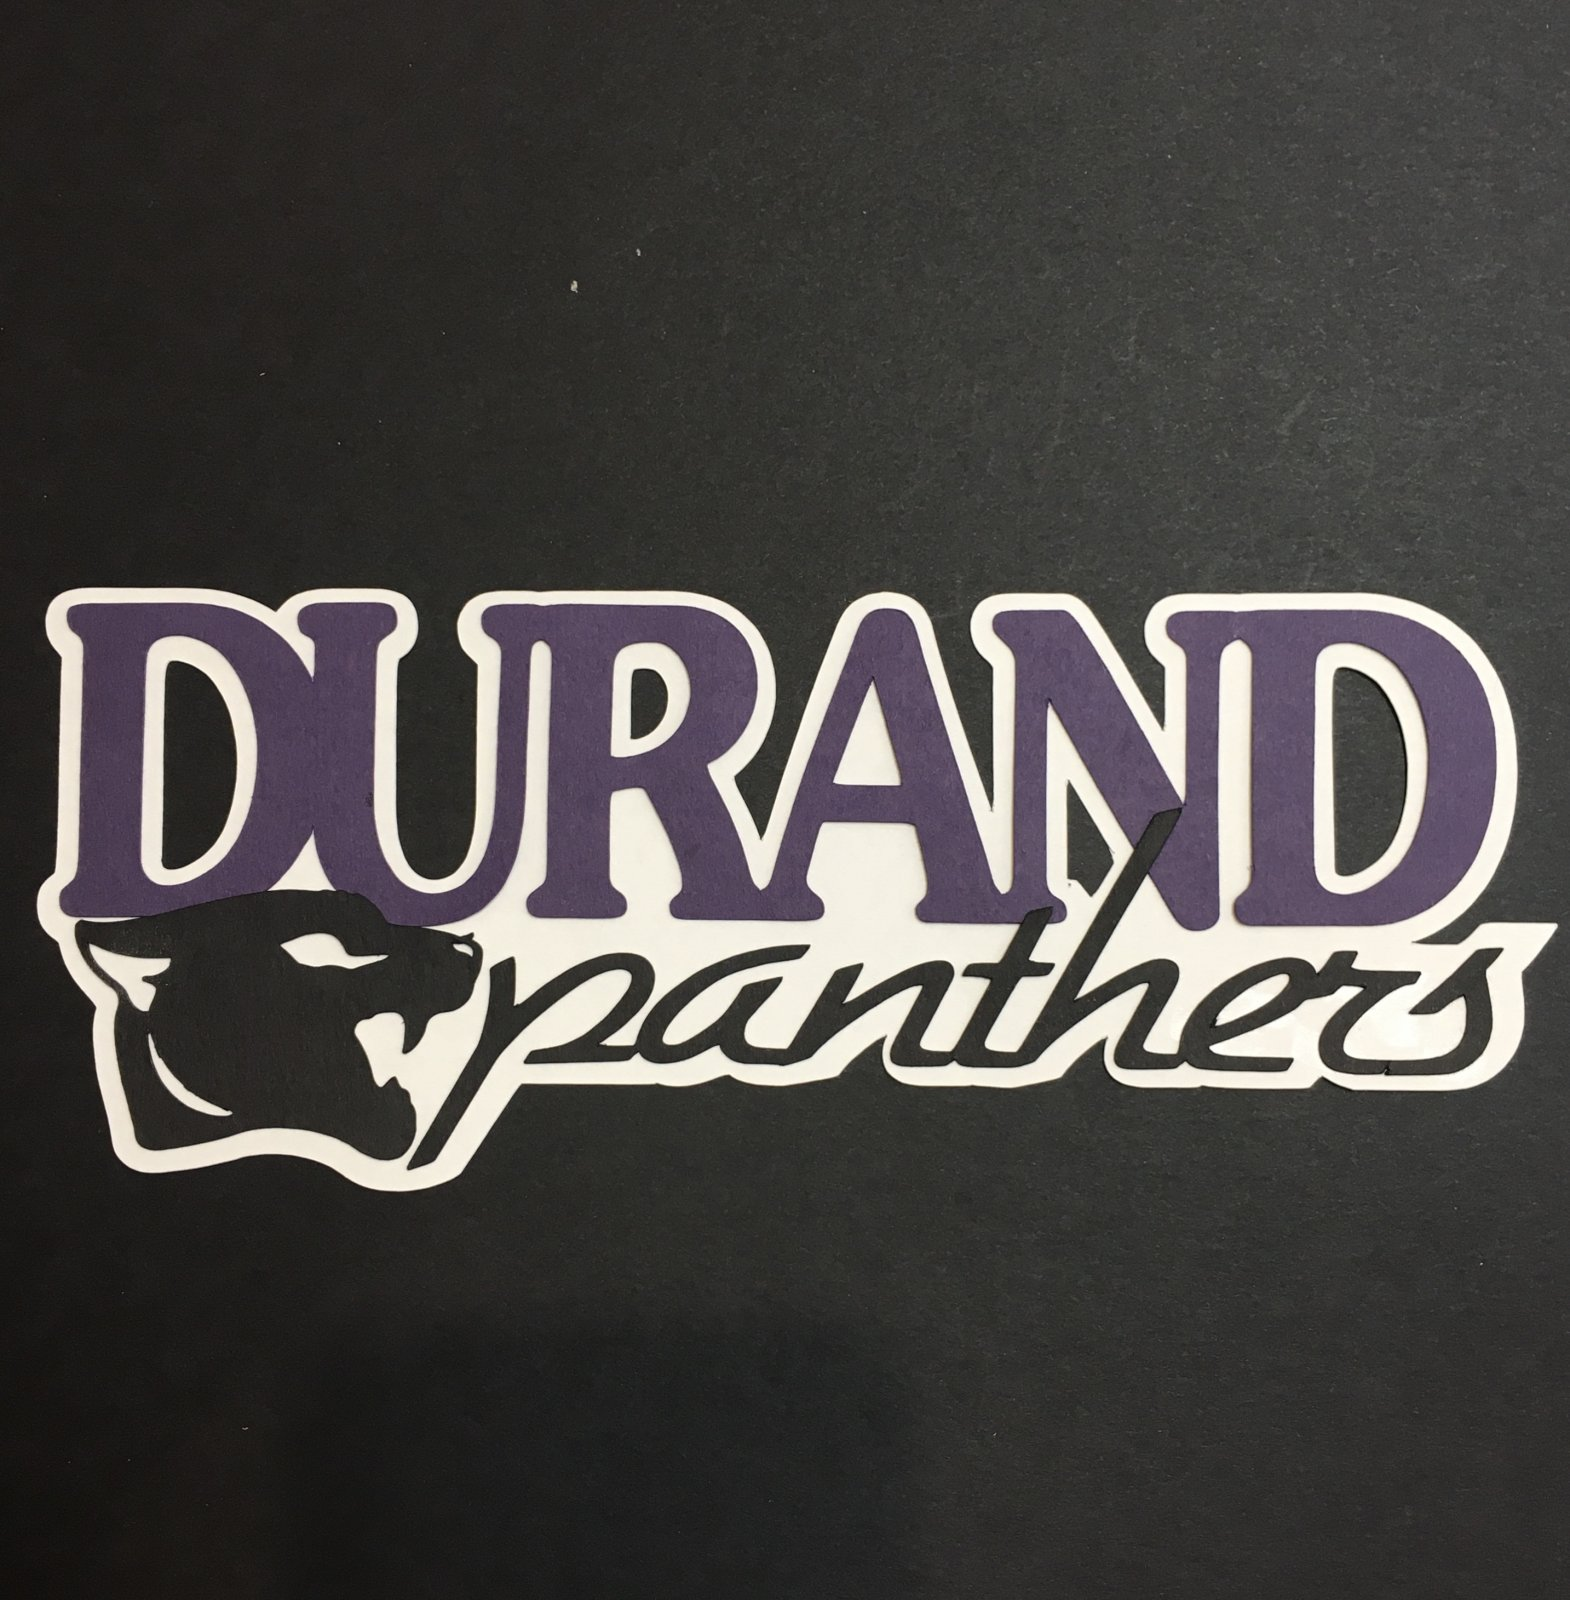 DURAND PANTHERS TITLE die cut